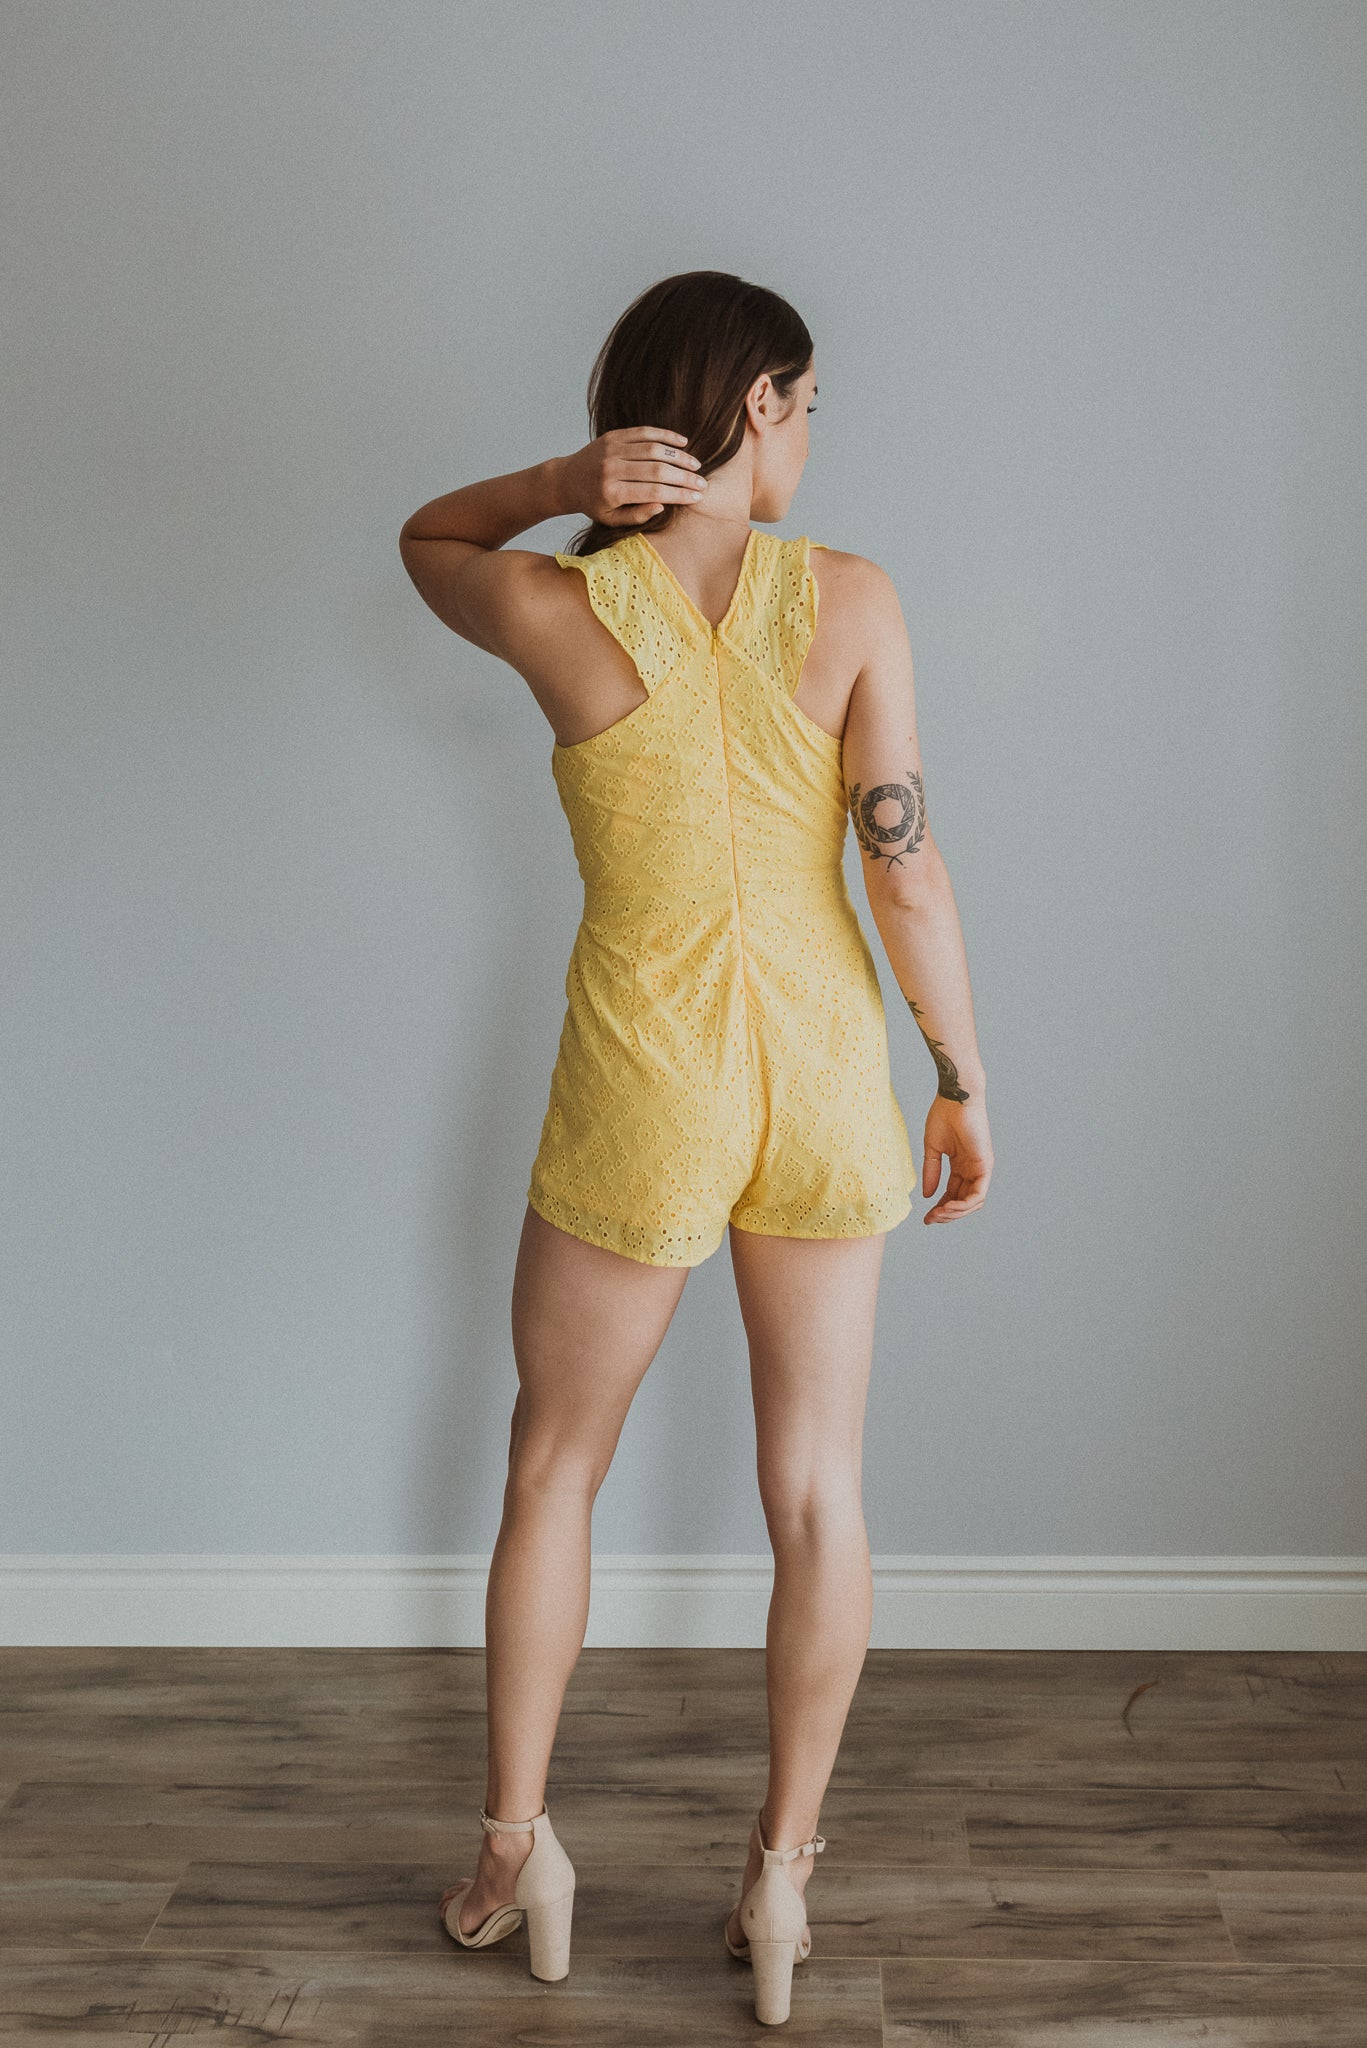 xSOLD OUTx Smell the Flowers Eyelet Romper in Sunflower Yellow